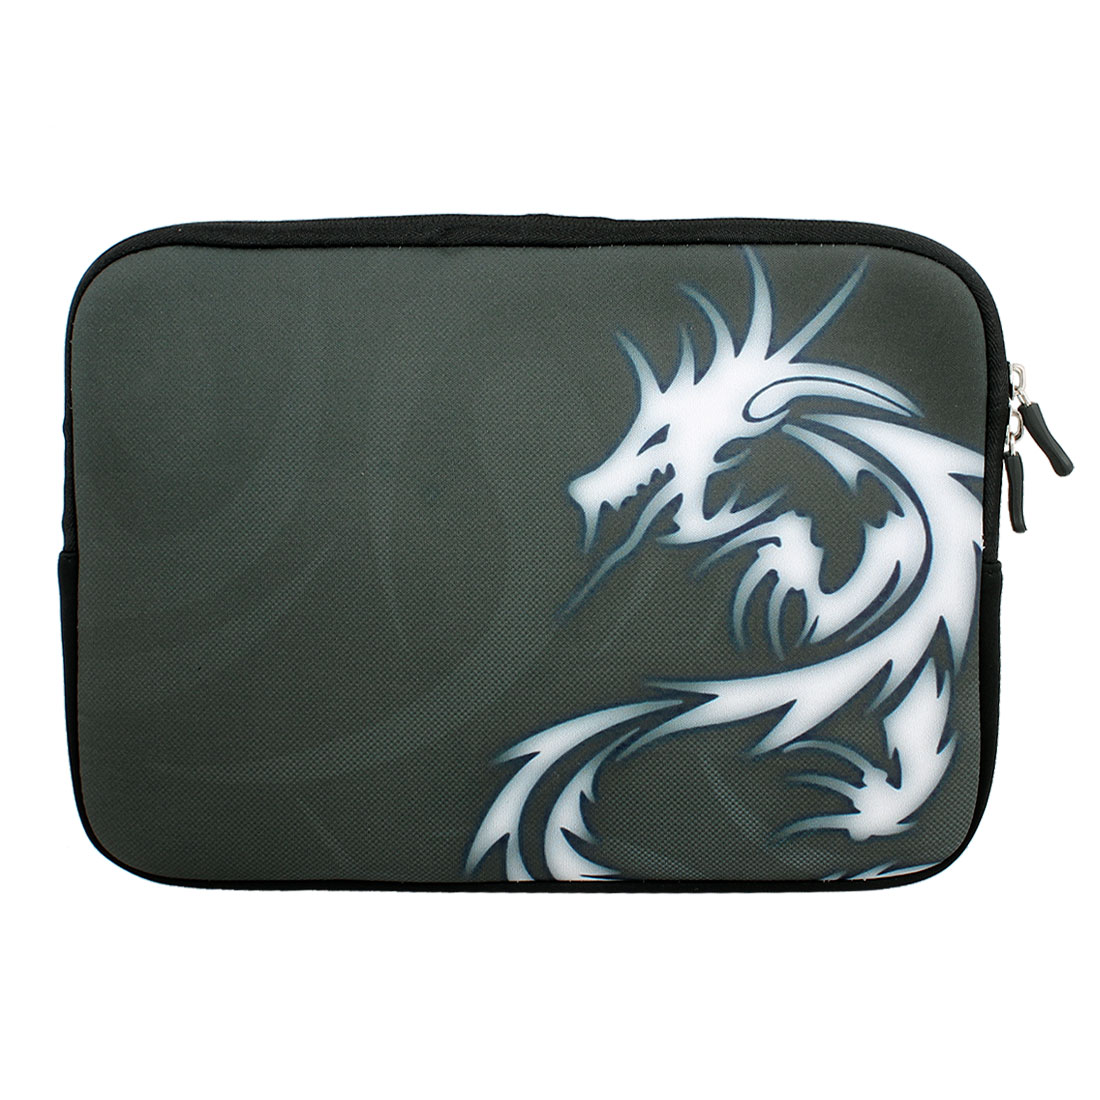 "Dragon Print 10"" 10.1"" 10.2"" Neoprene Notebook Laptop Sleeve Bag Case for Asus iPad 3"